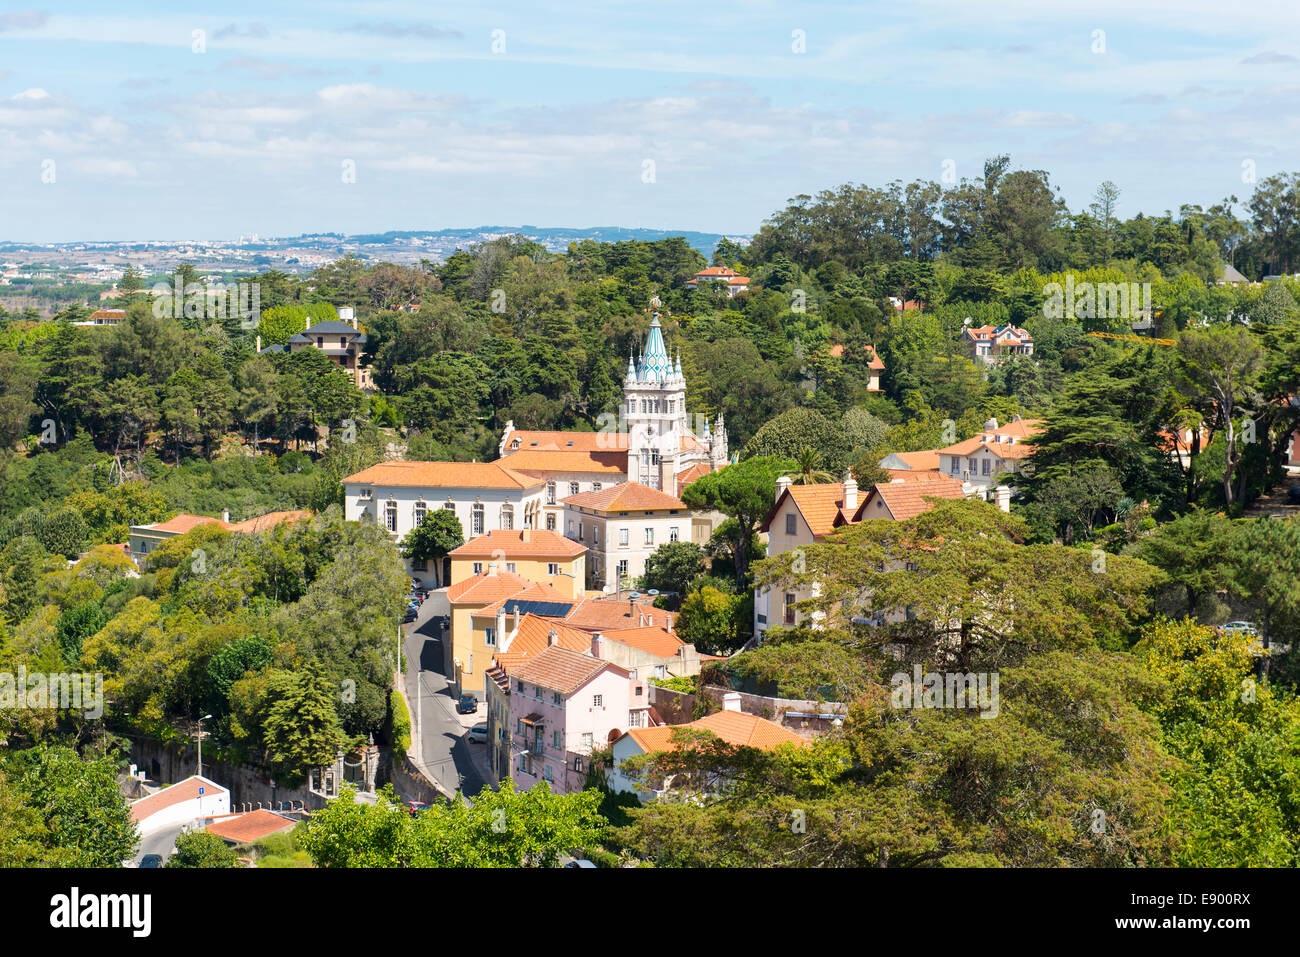 Portugal Sintra Panoramic view of town centre center Camara Municipal surrounding woods distant hills - Stock Image